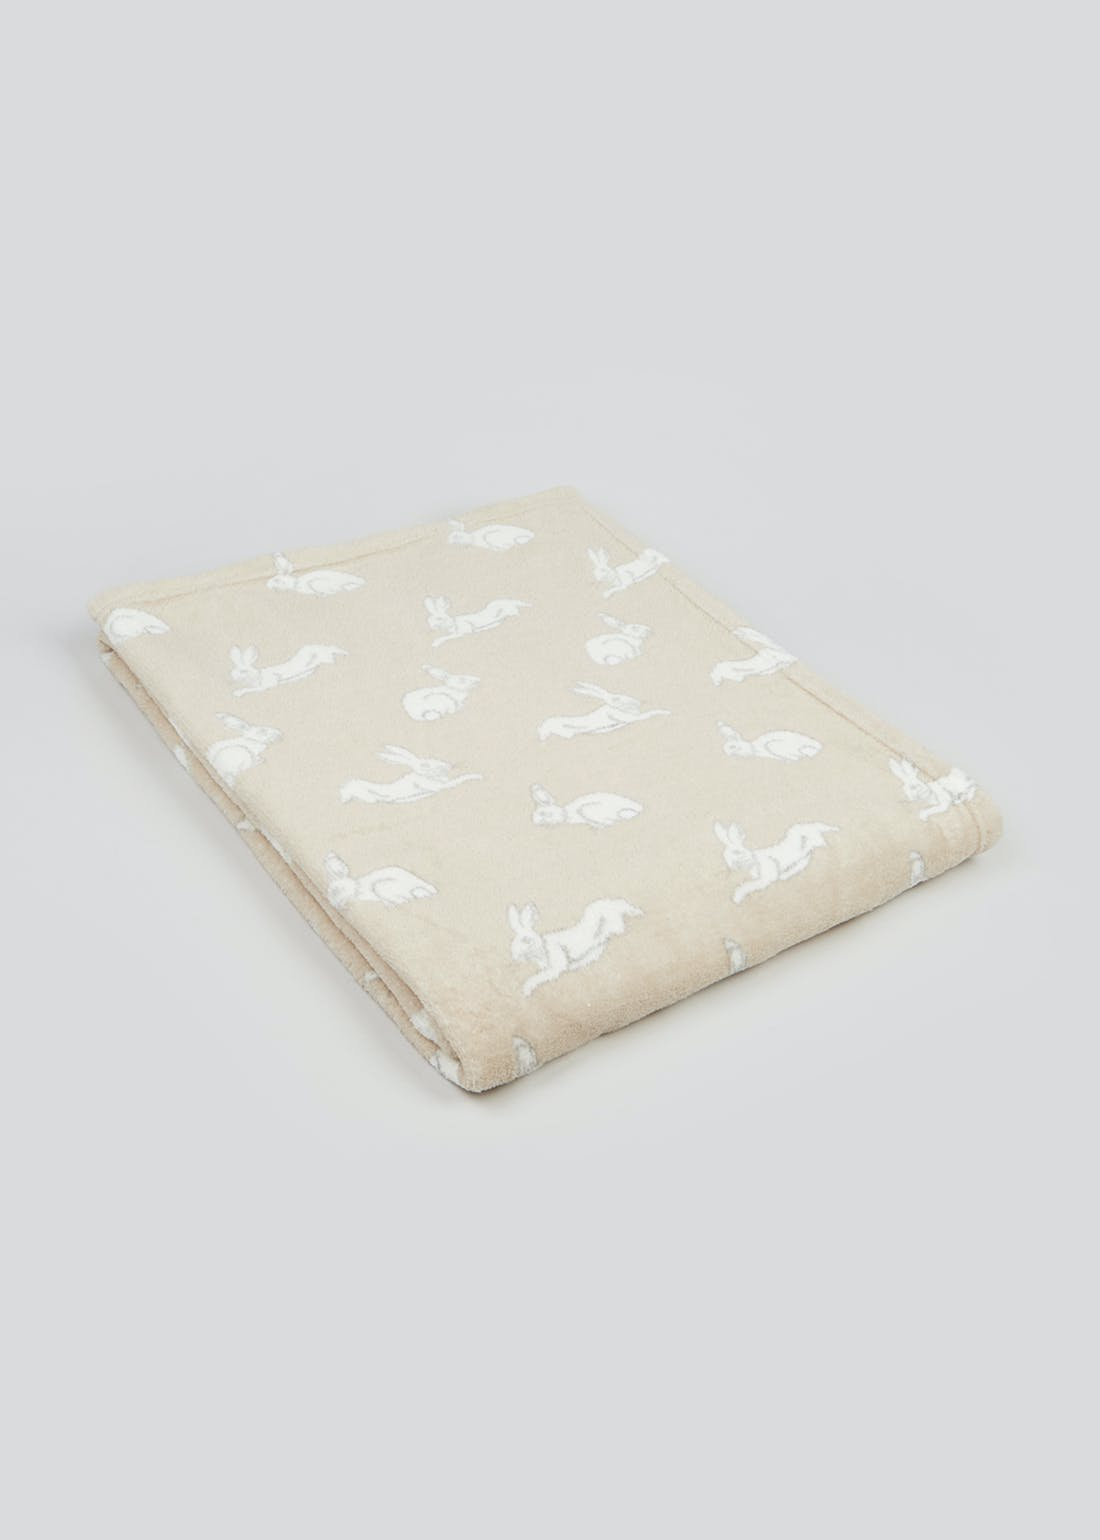 Bunny Print Fleece Throw Blanket (150cm x 130cm)